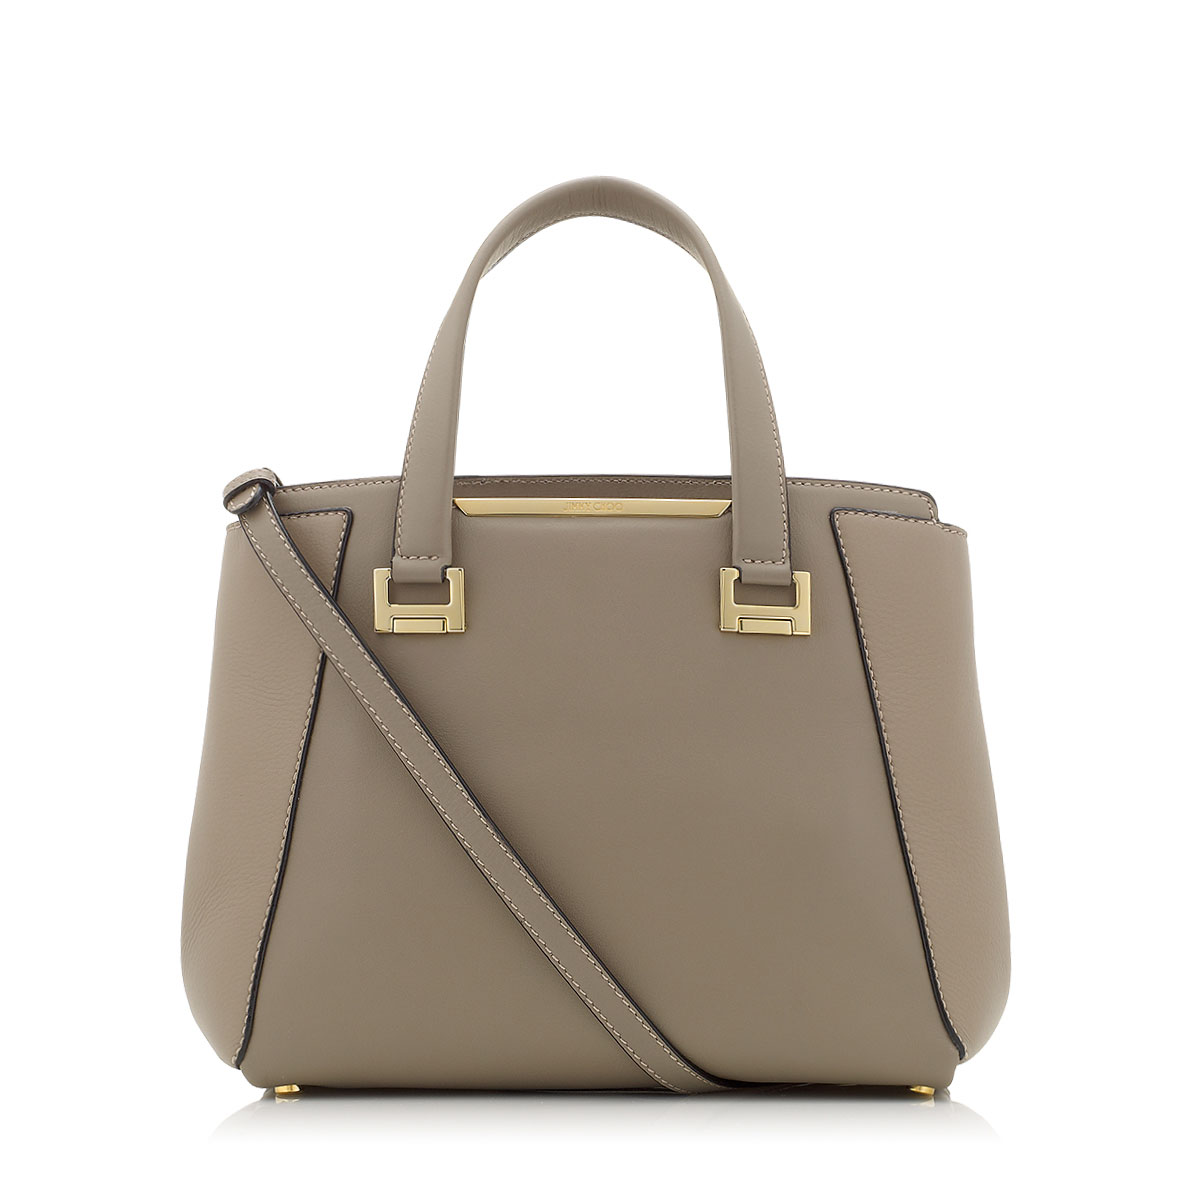 ALFIE Musk Soft Smooth and Soft Calf Leather Tote Bag